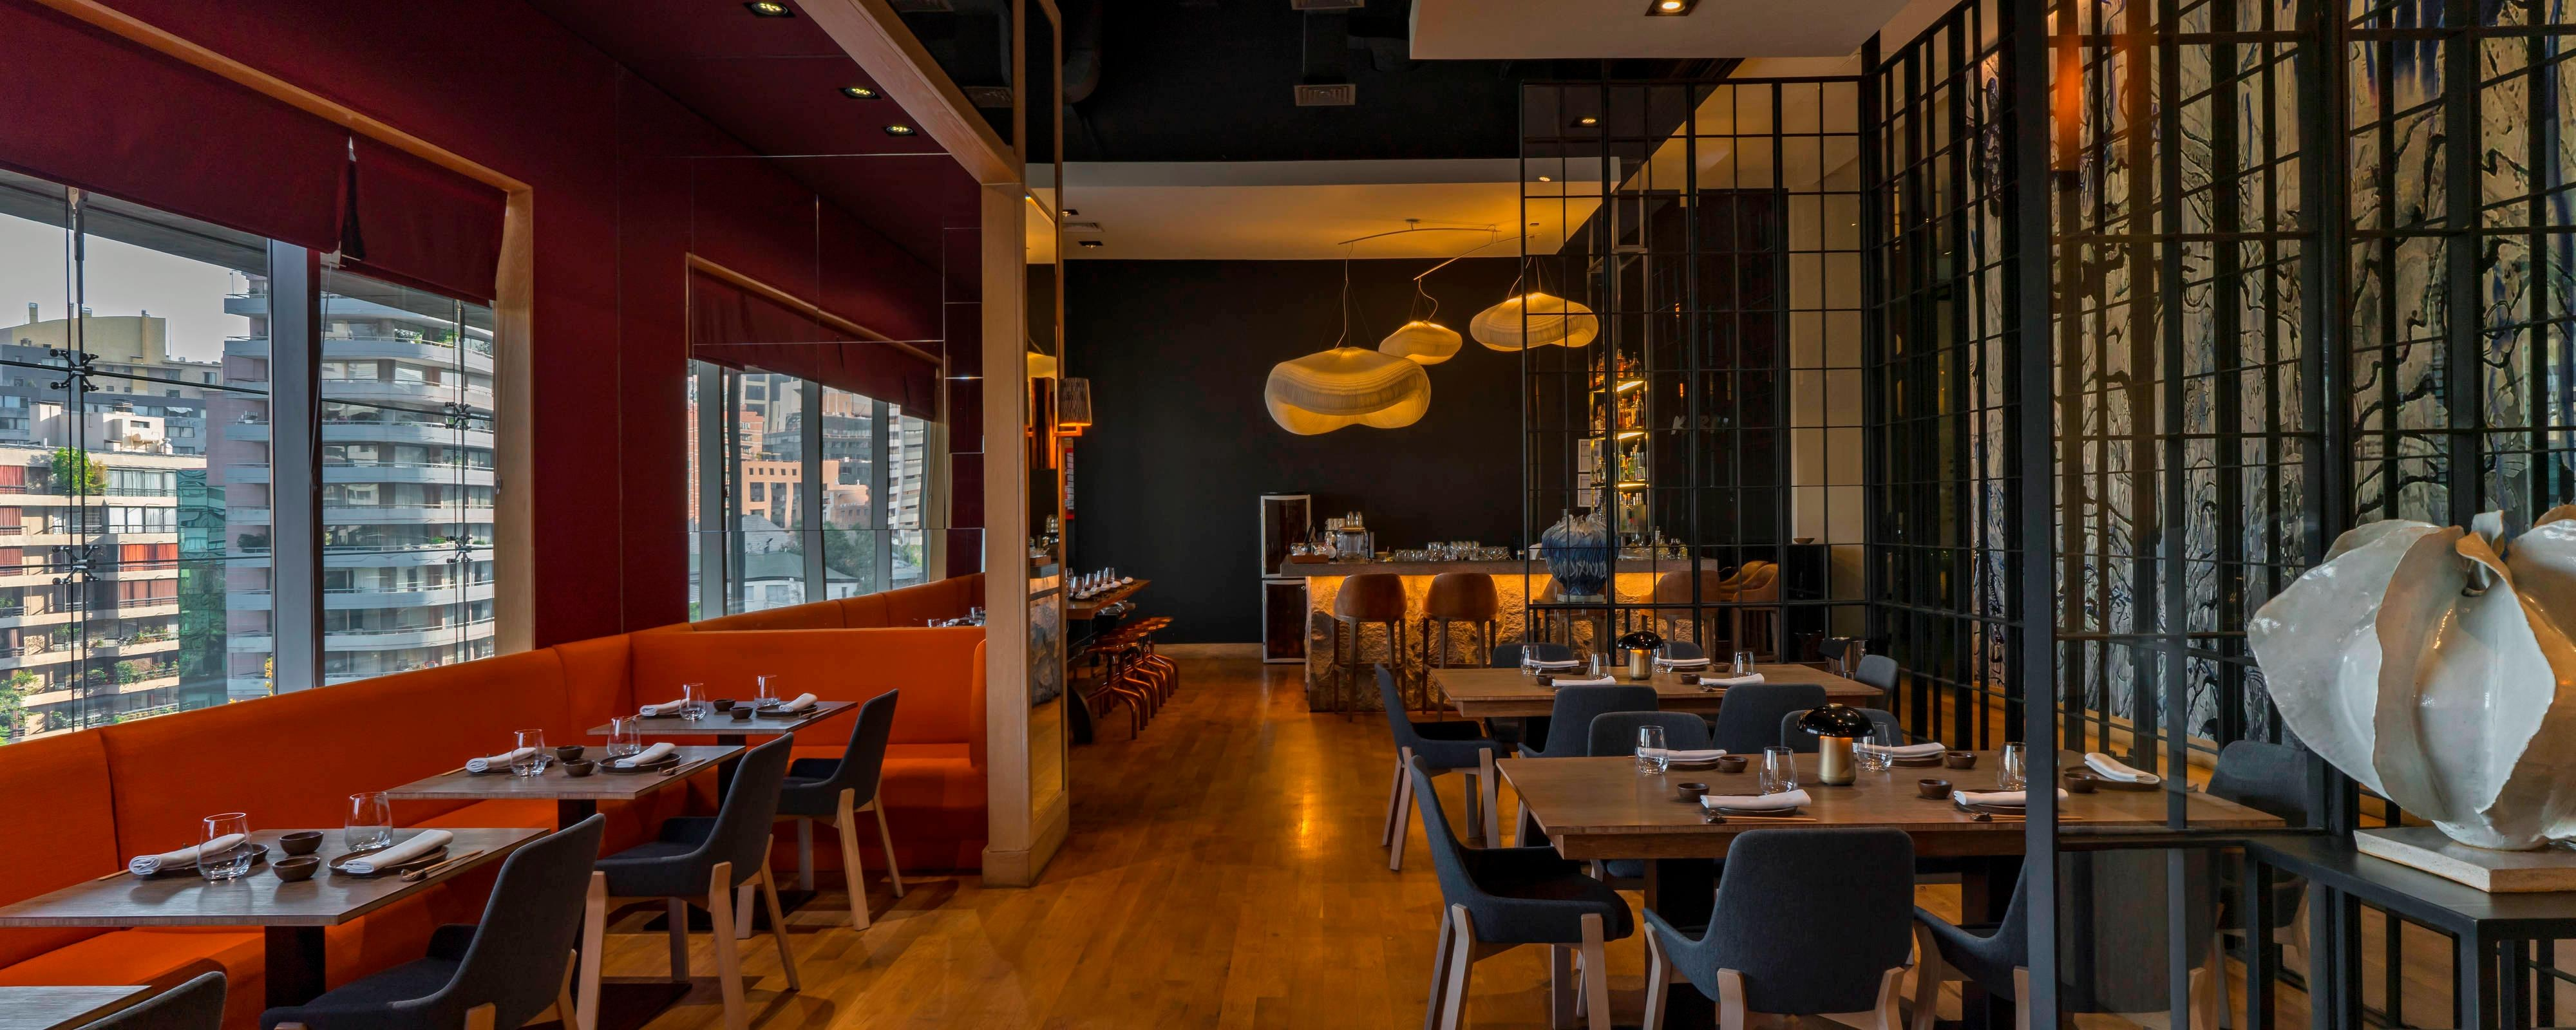 Las Condes Restaurants Bars W Santiago